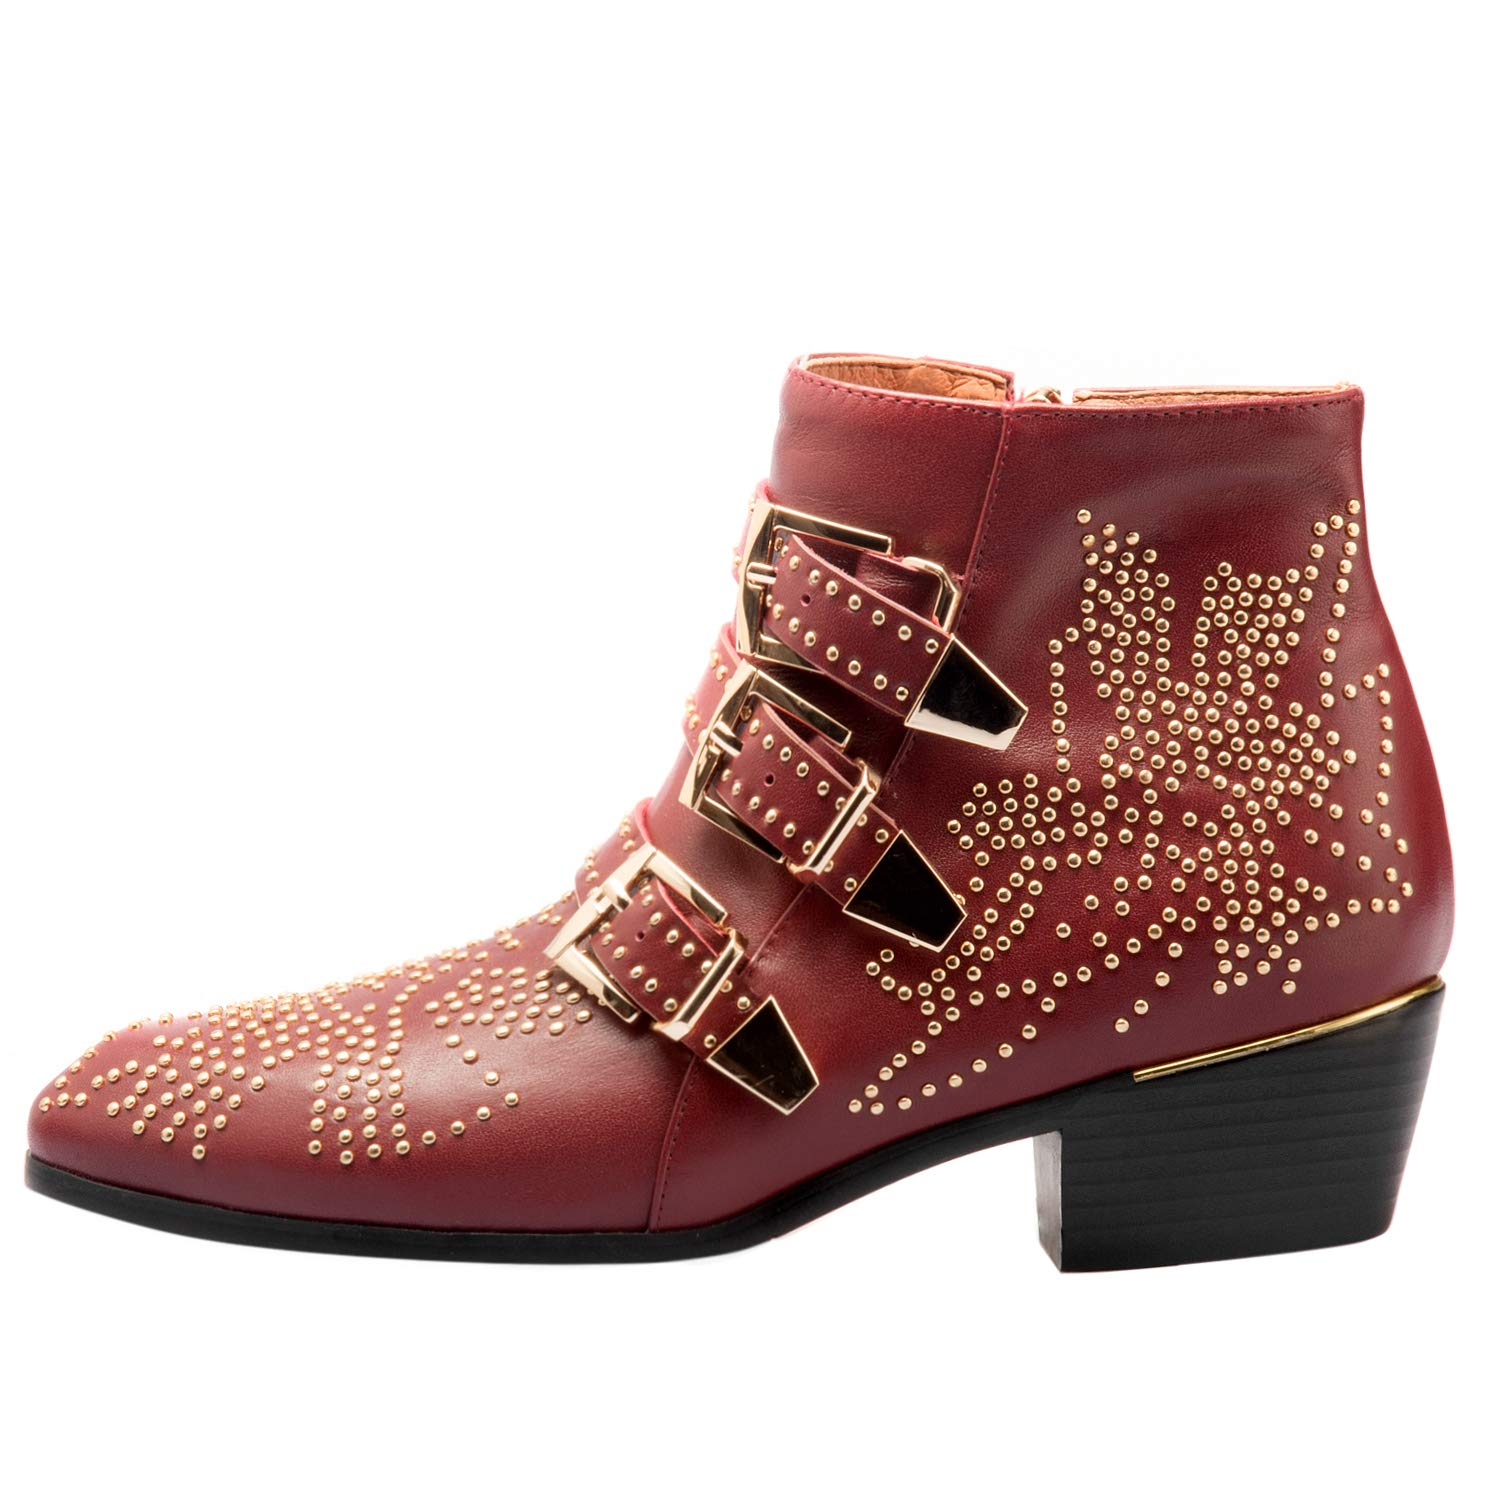 Wine Red Comfity Boots for Women,Women's Leather Boot Rivets Studded shoes Metal Buckle Low Heels Ankle Boots